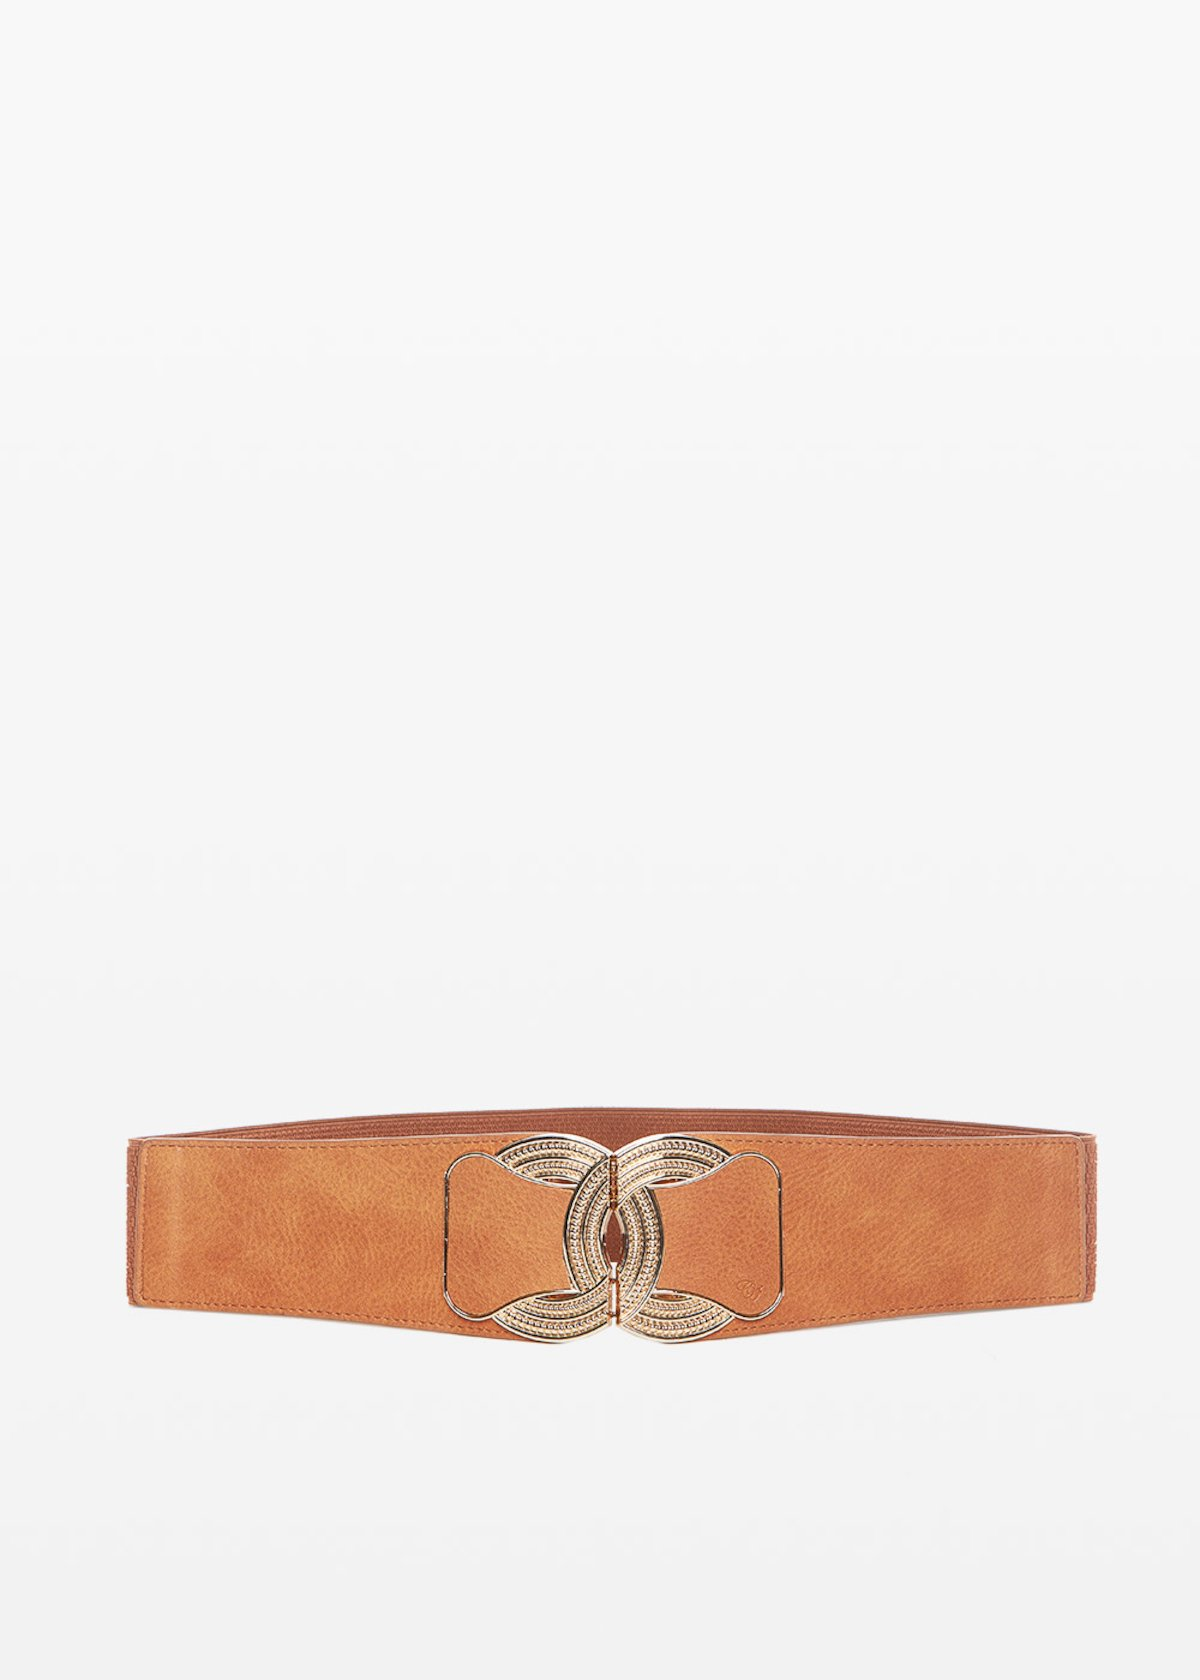 Colty faux leather belt with metal buckle - Tobacco - Woman - Category image